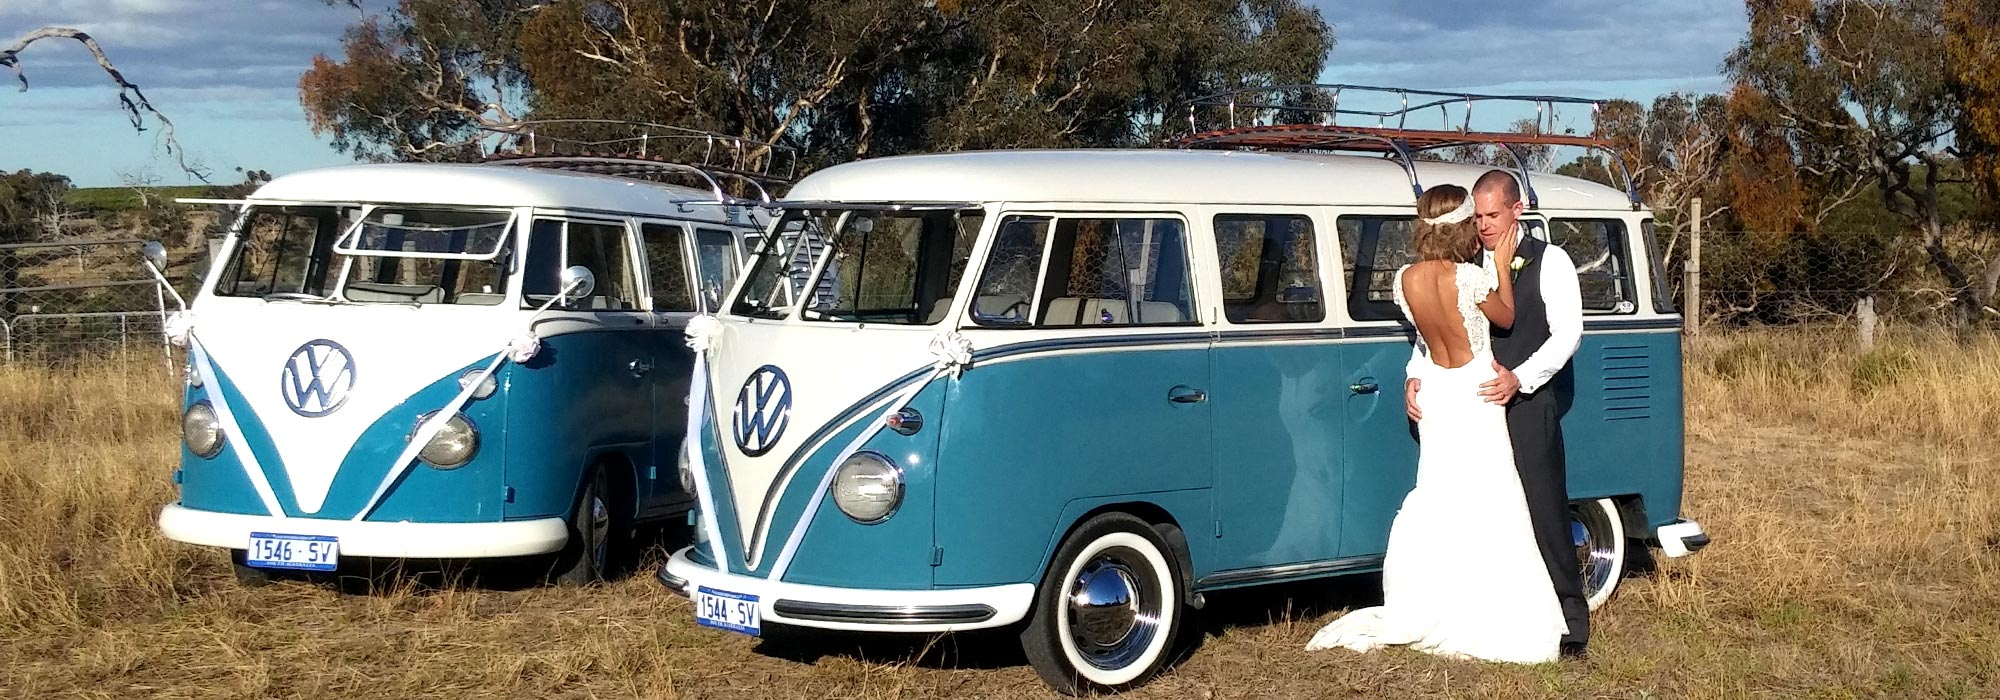 Two Blue & White Vintage VW Kombi Vans restored by Kombi Cruise Adelaide Bride & Groom kissing nearby on their wedding day